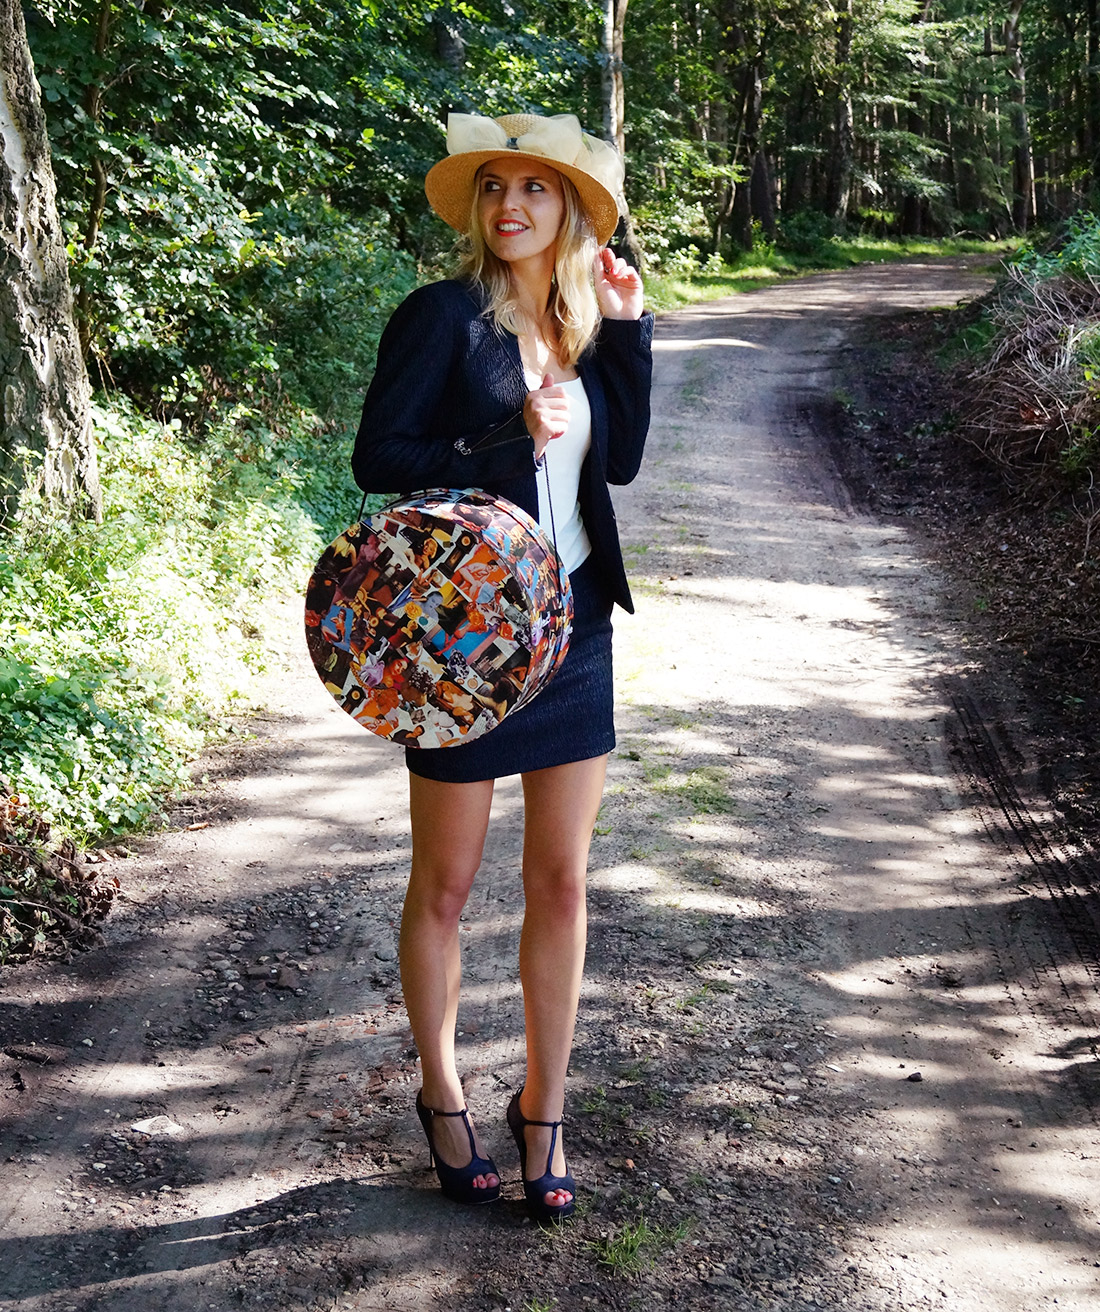 Bag-at-You---Fashion-blog---Hat-box-bag---Wedding-outfit-guest